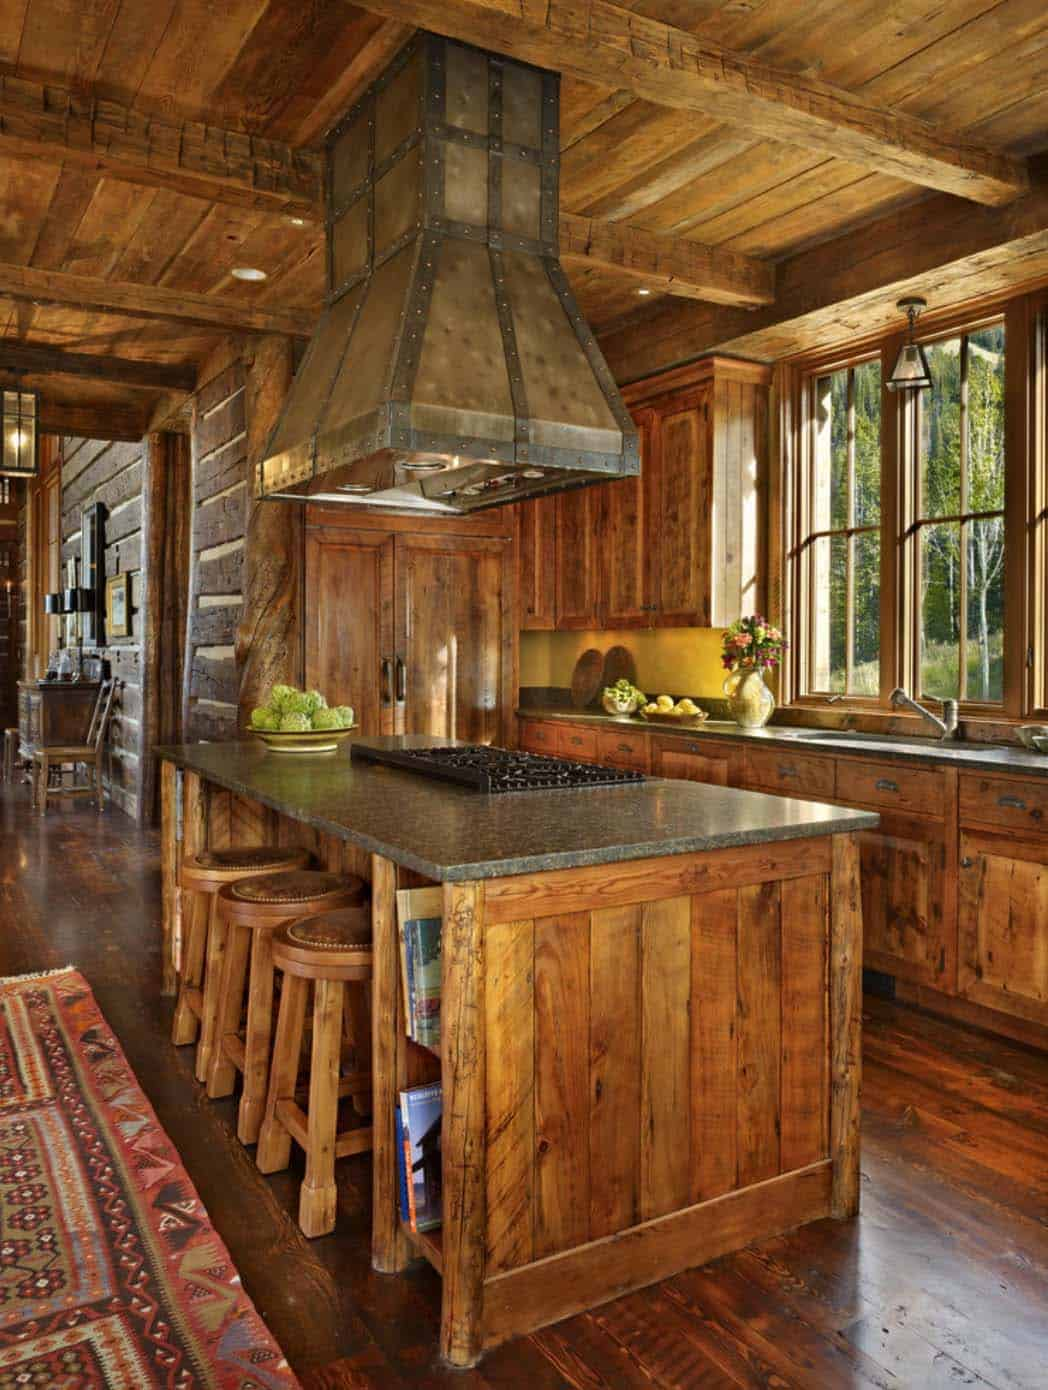 mountian-retreat-rustic-kitchen